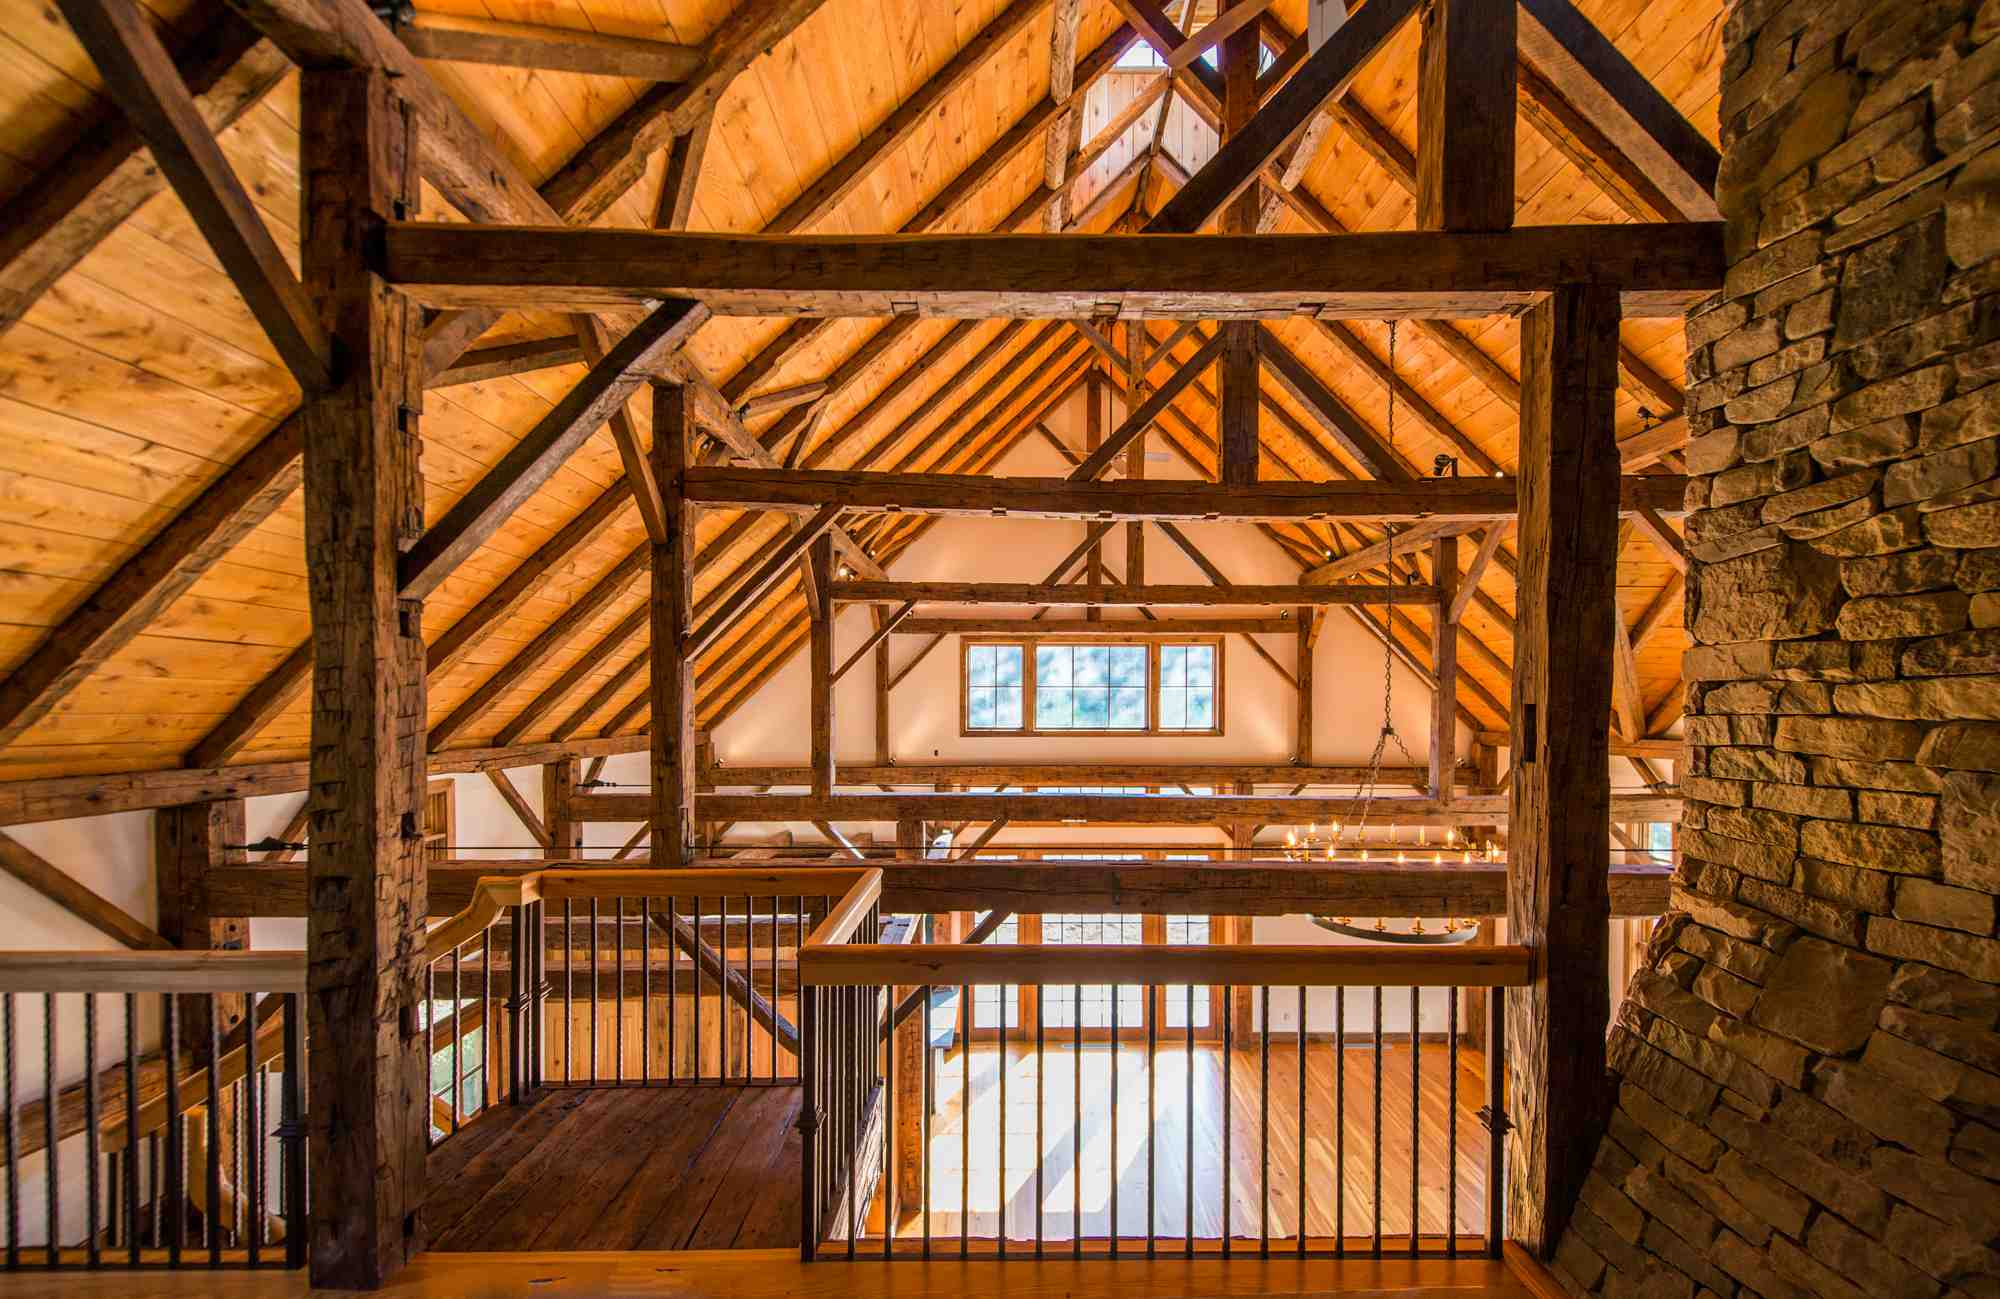 Fullsize Of Barn Home Interior Pictures